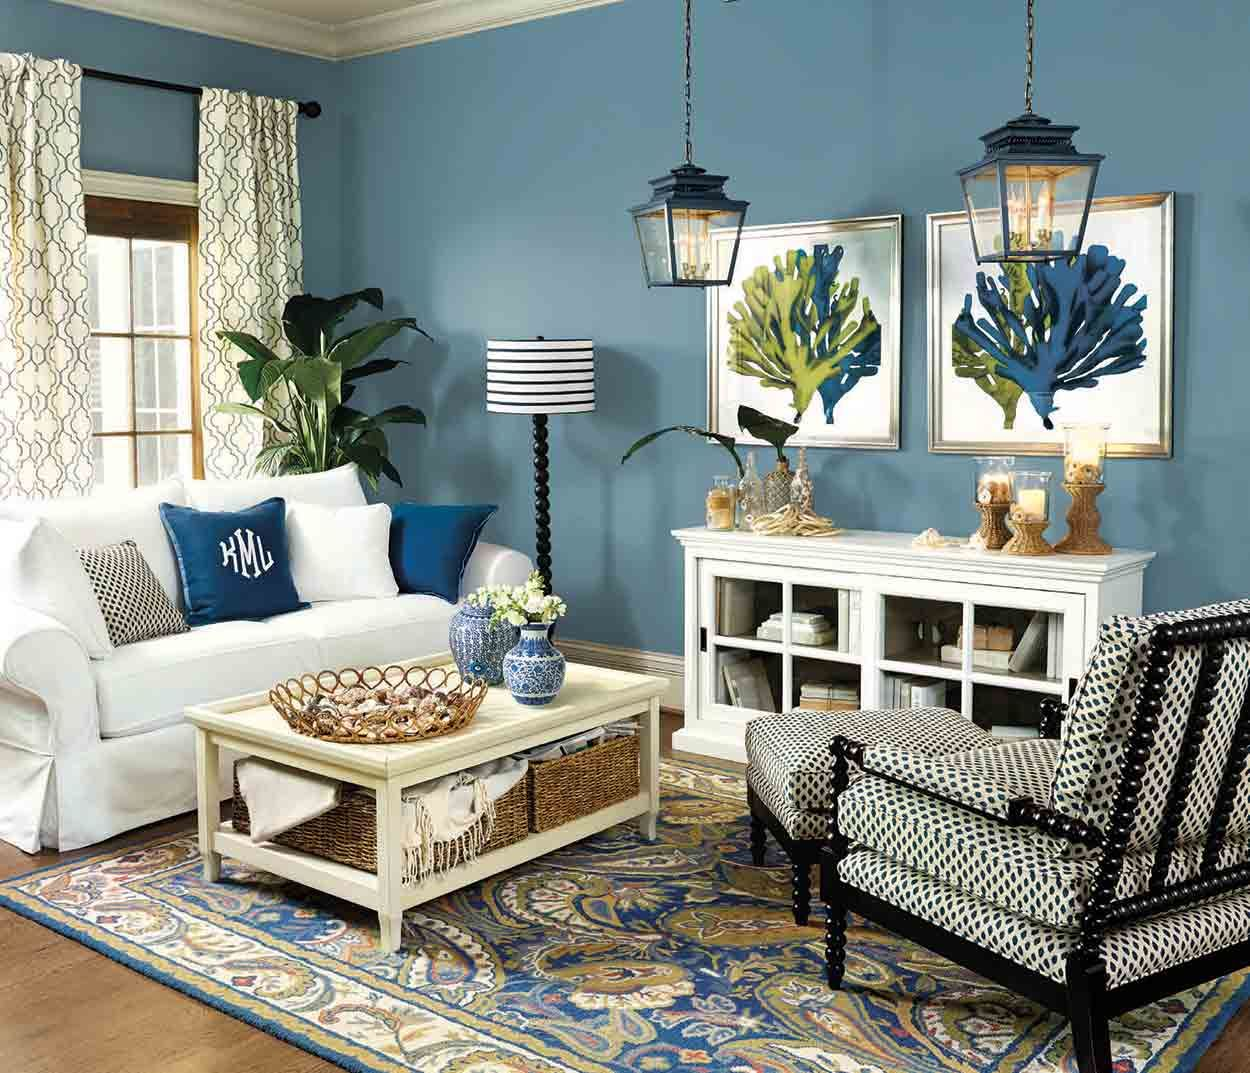 Best Living Rooms Ideas For Decorating In 2019 Living Rooms 400 x 300